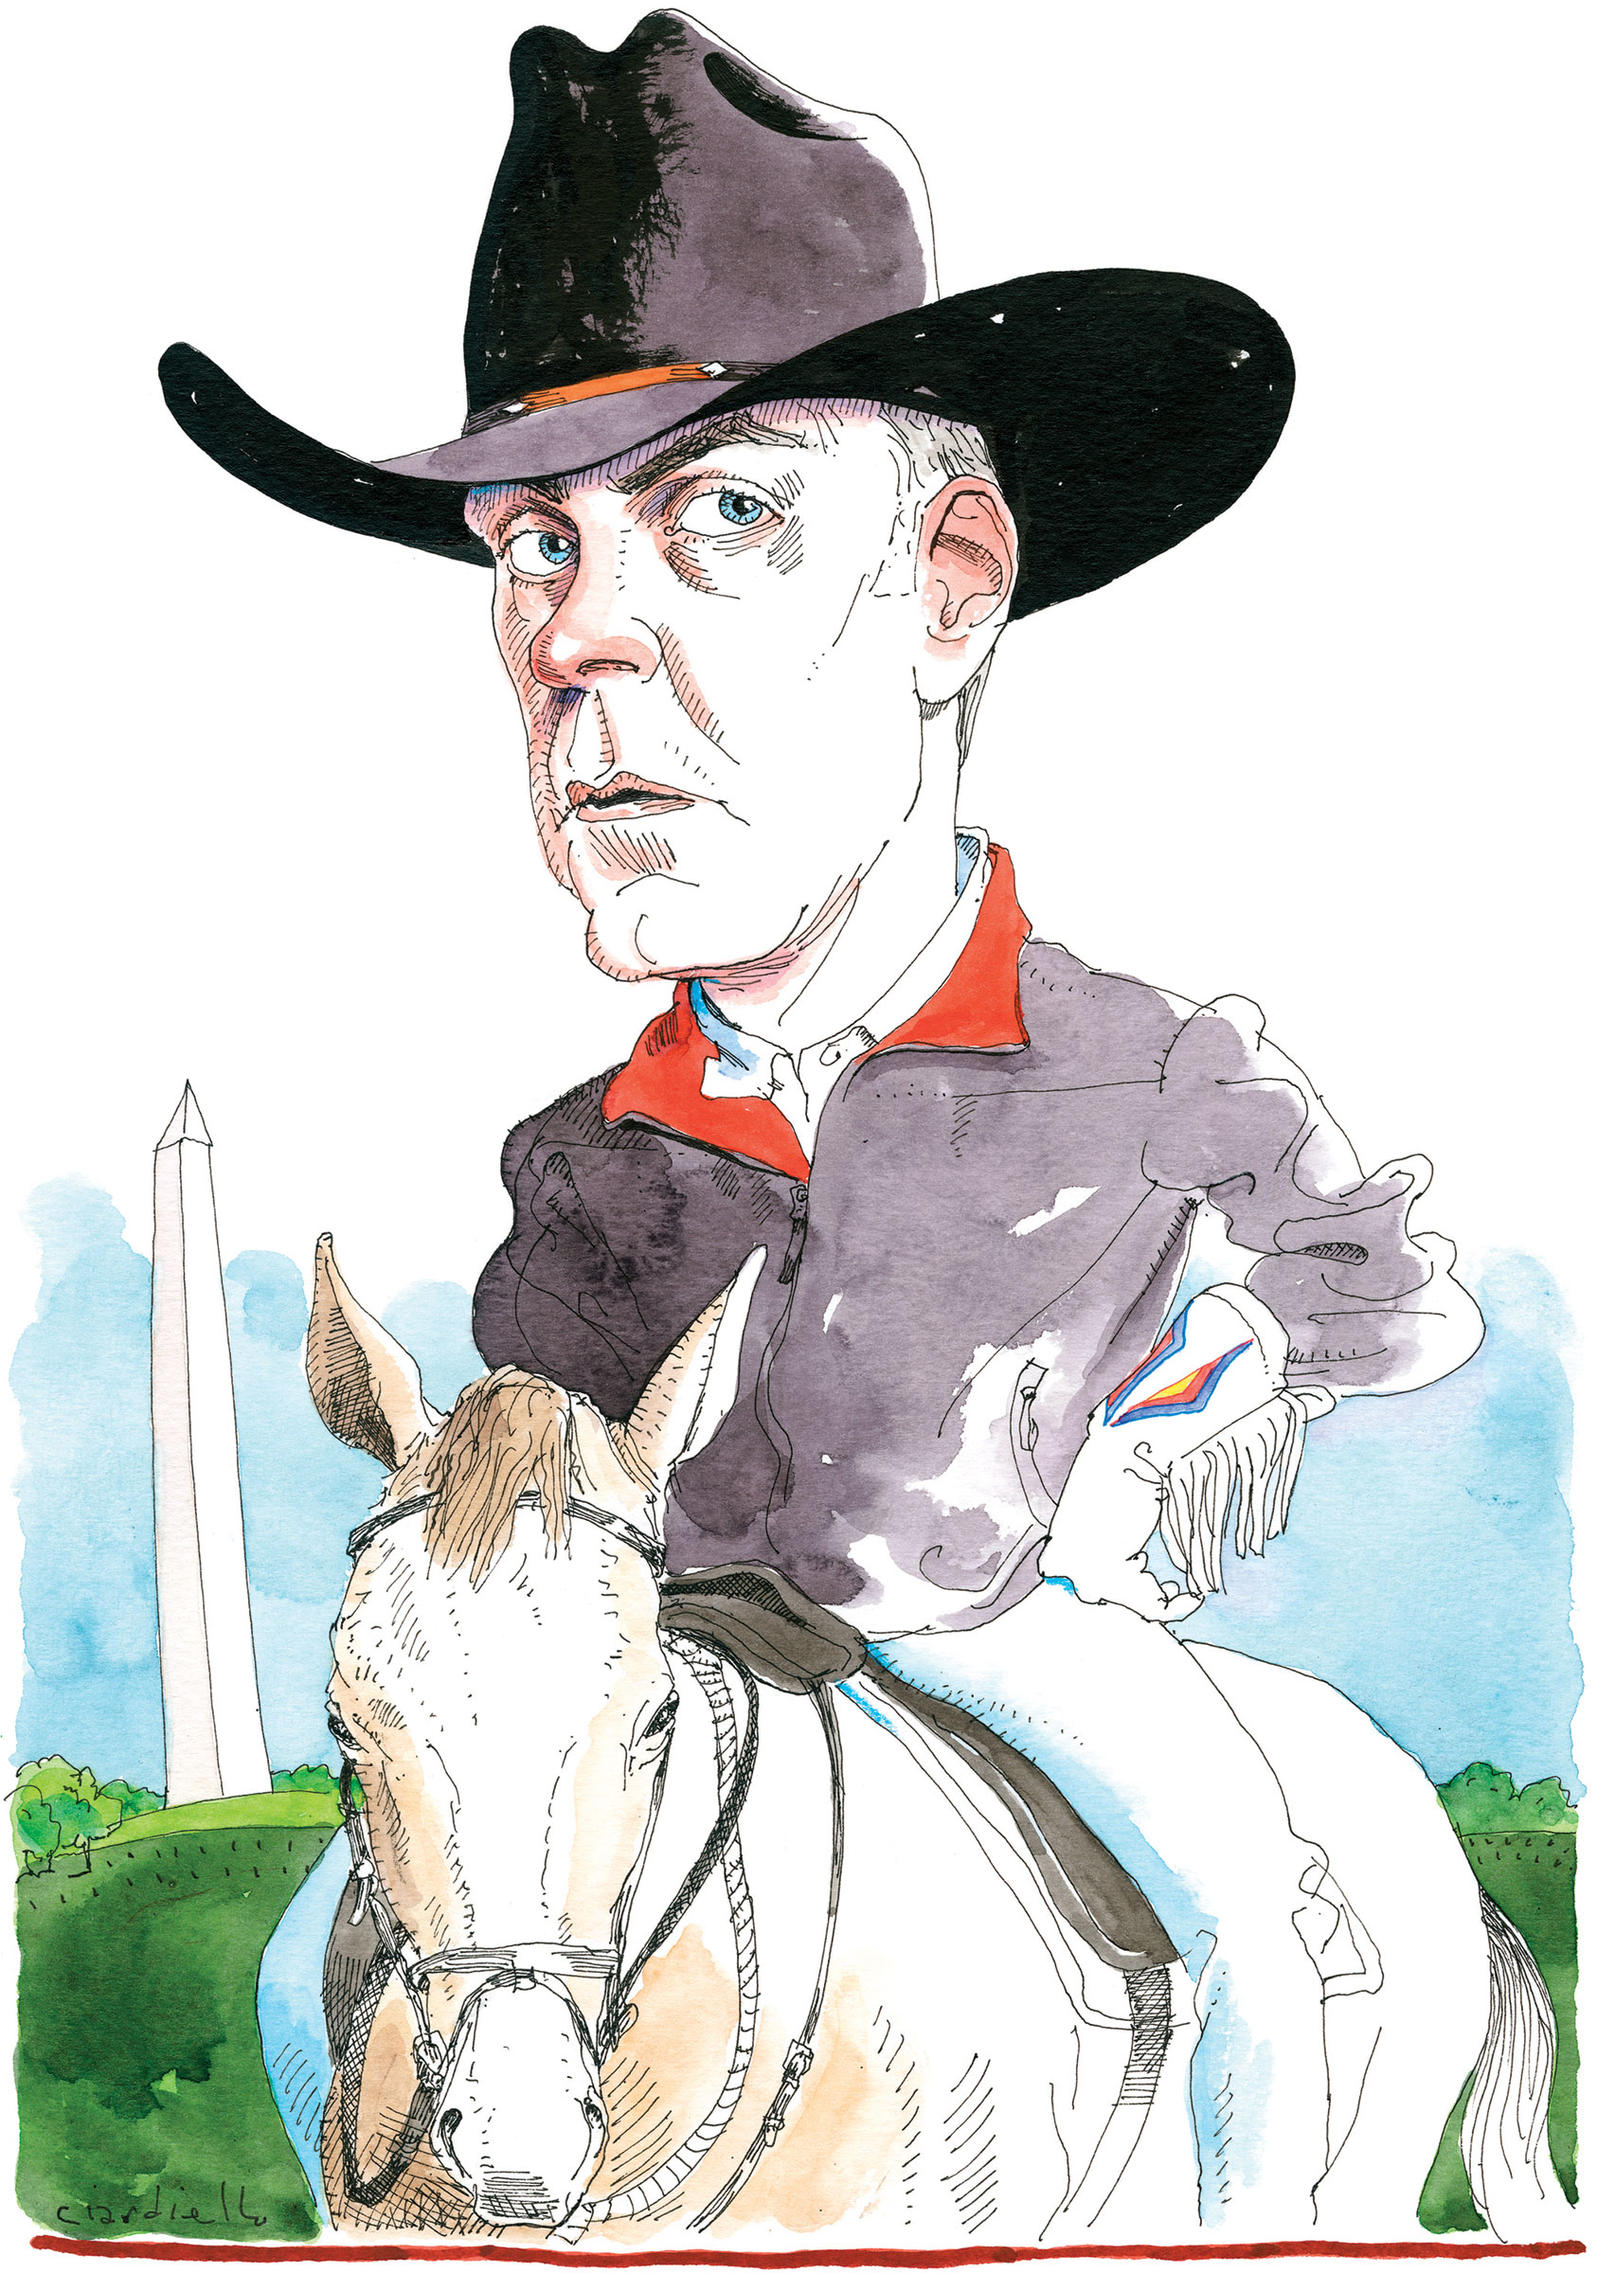 Ryan Zinke's conservation actions in his first few months haven't lined up with his Roosevelt-sized promises. Illustration: Joe Ciardiello